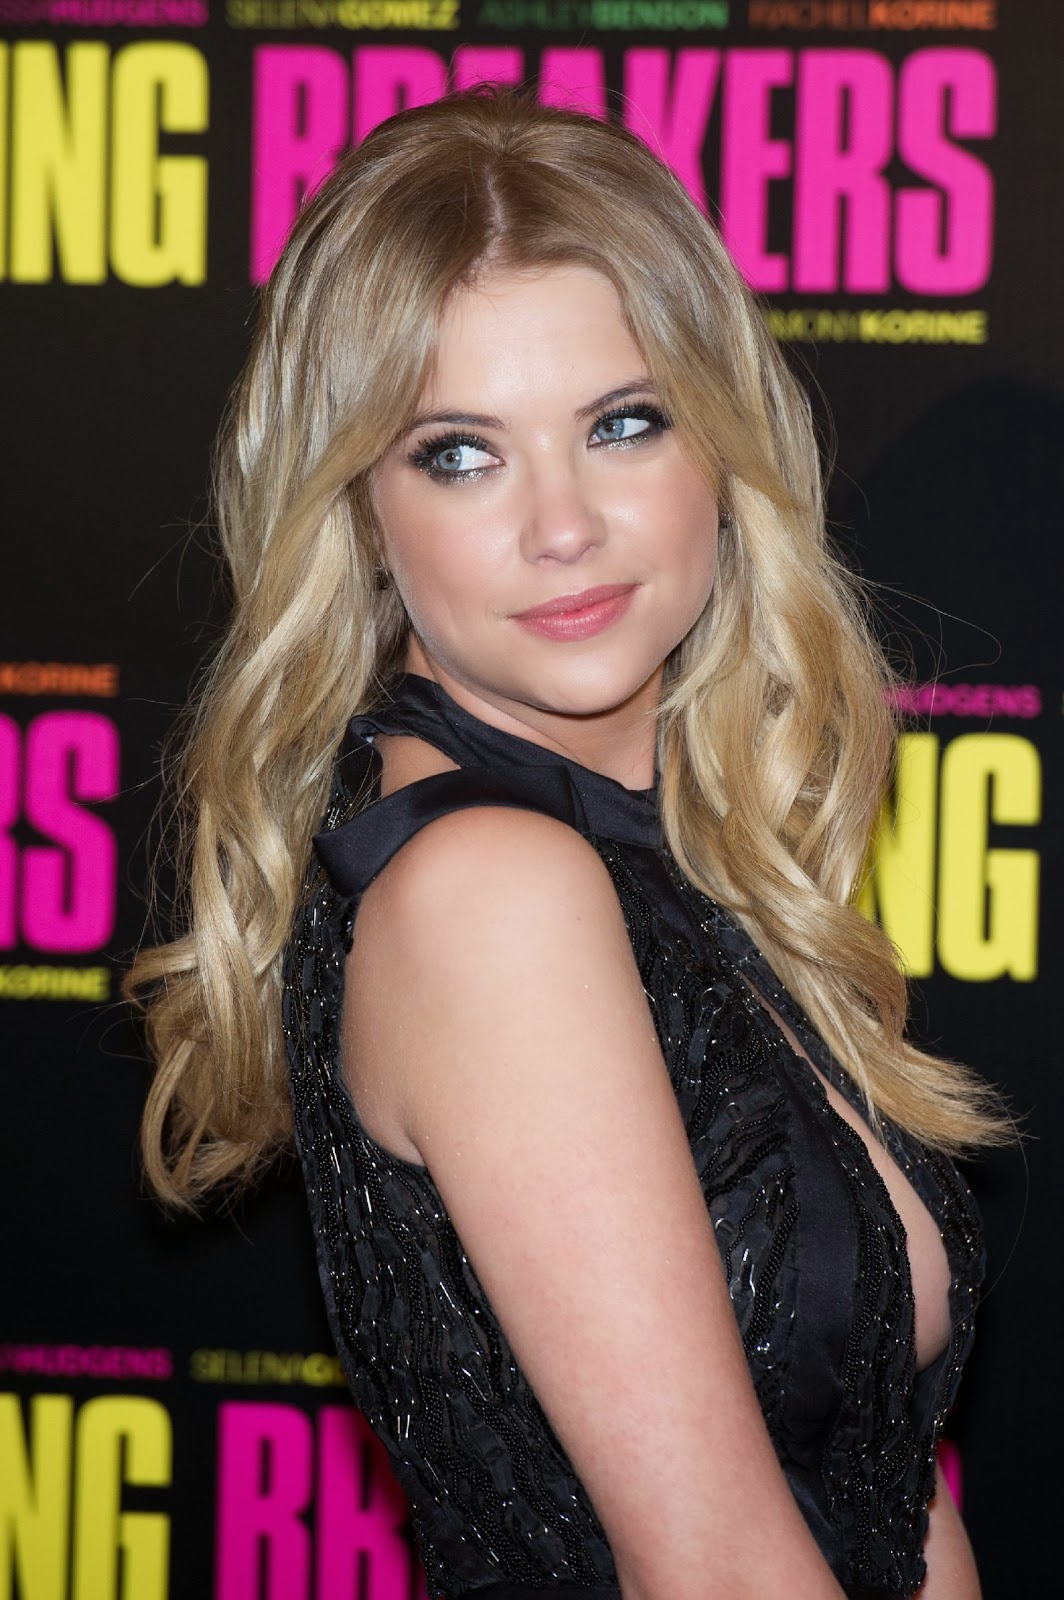 Ashley Benson photo